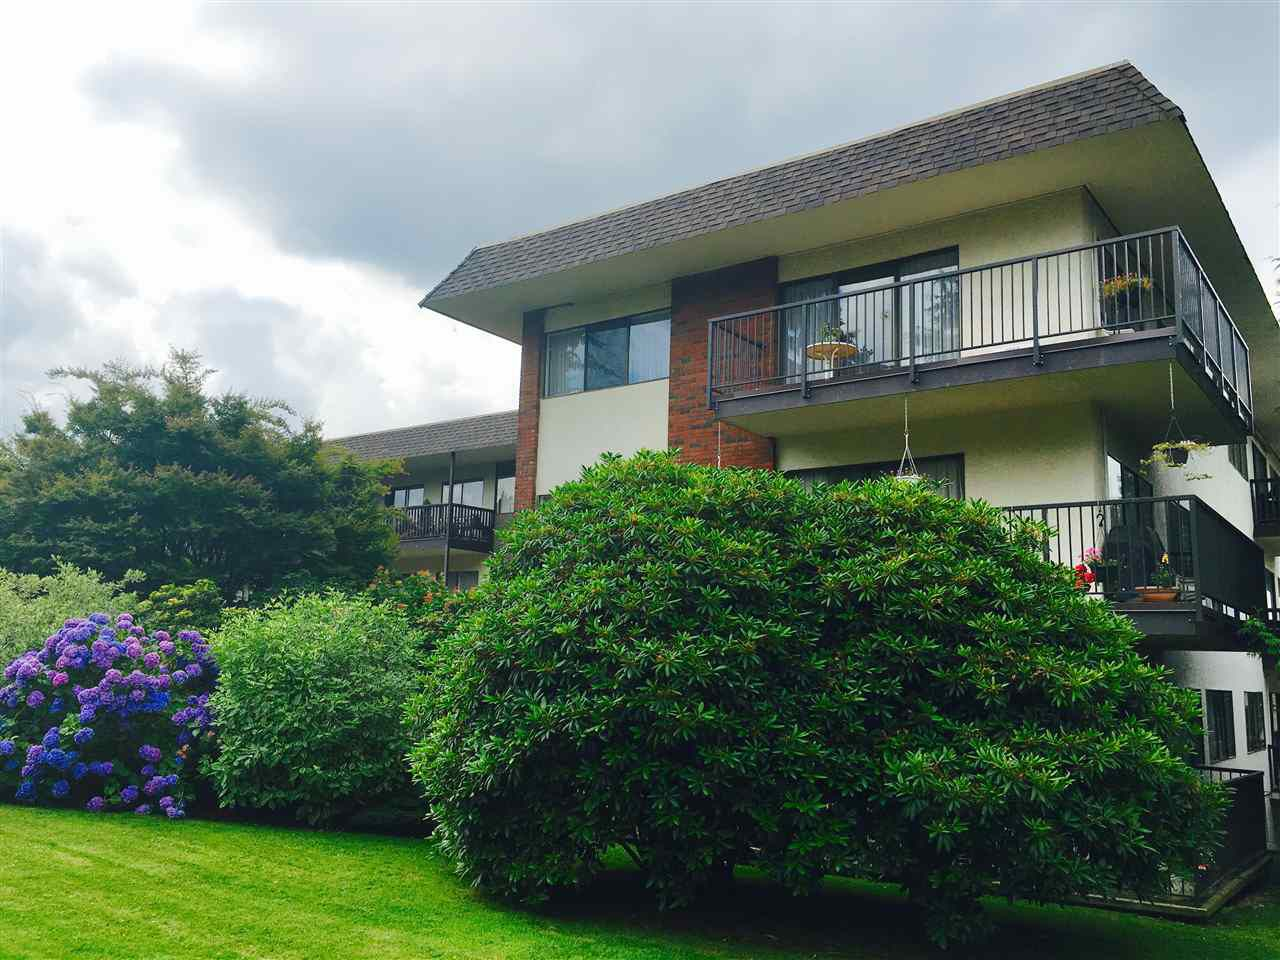 """Main Photo: 313 155 E 5TH Street in North Vancouver: Lower Lonsdale Condo for sale in """"WINCHESTER ESTATES"""" : MLS®# R2135023"""